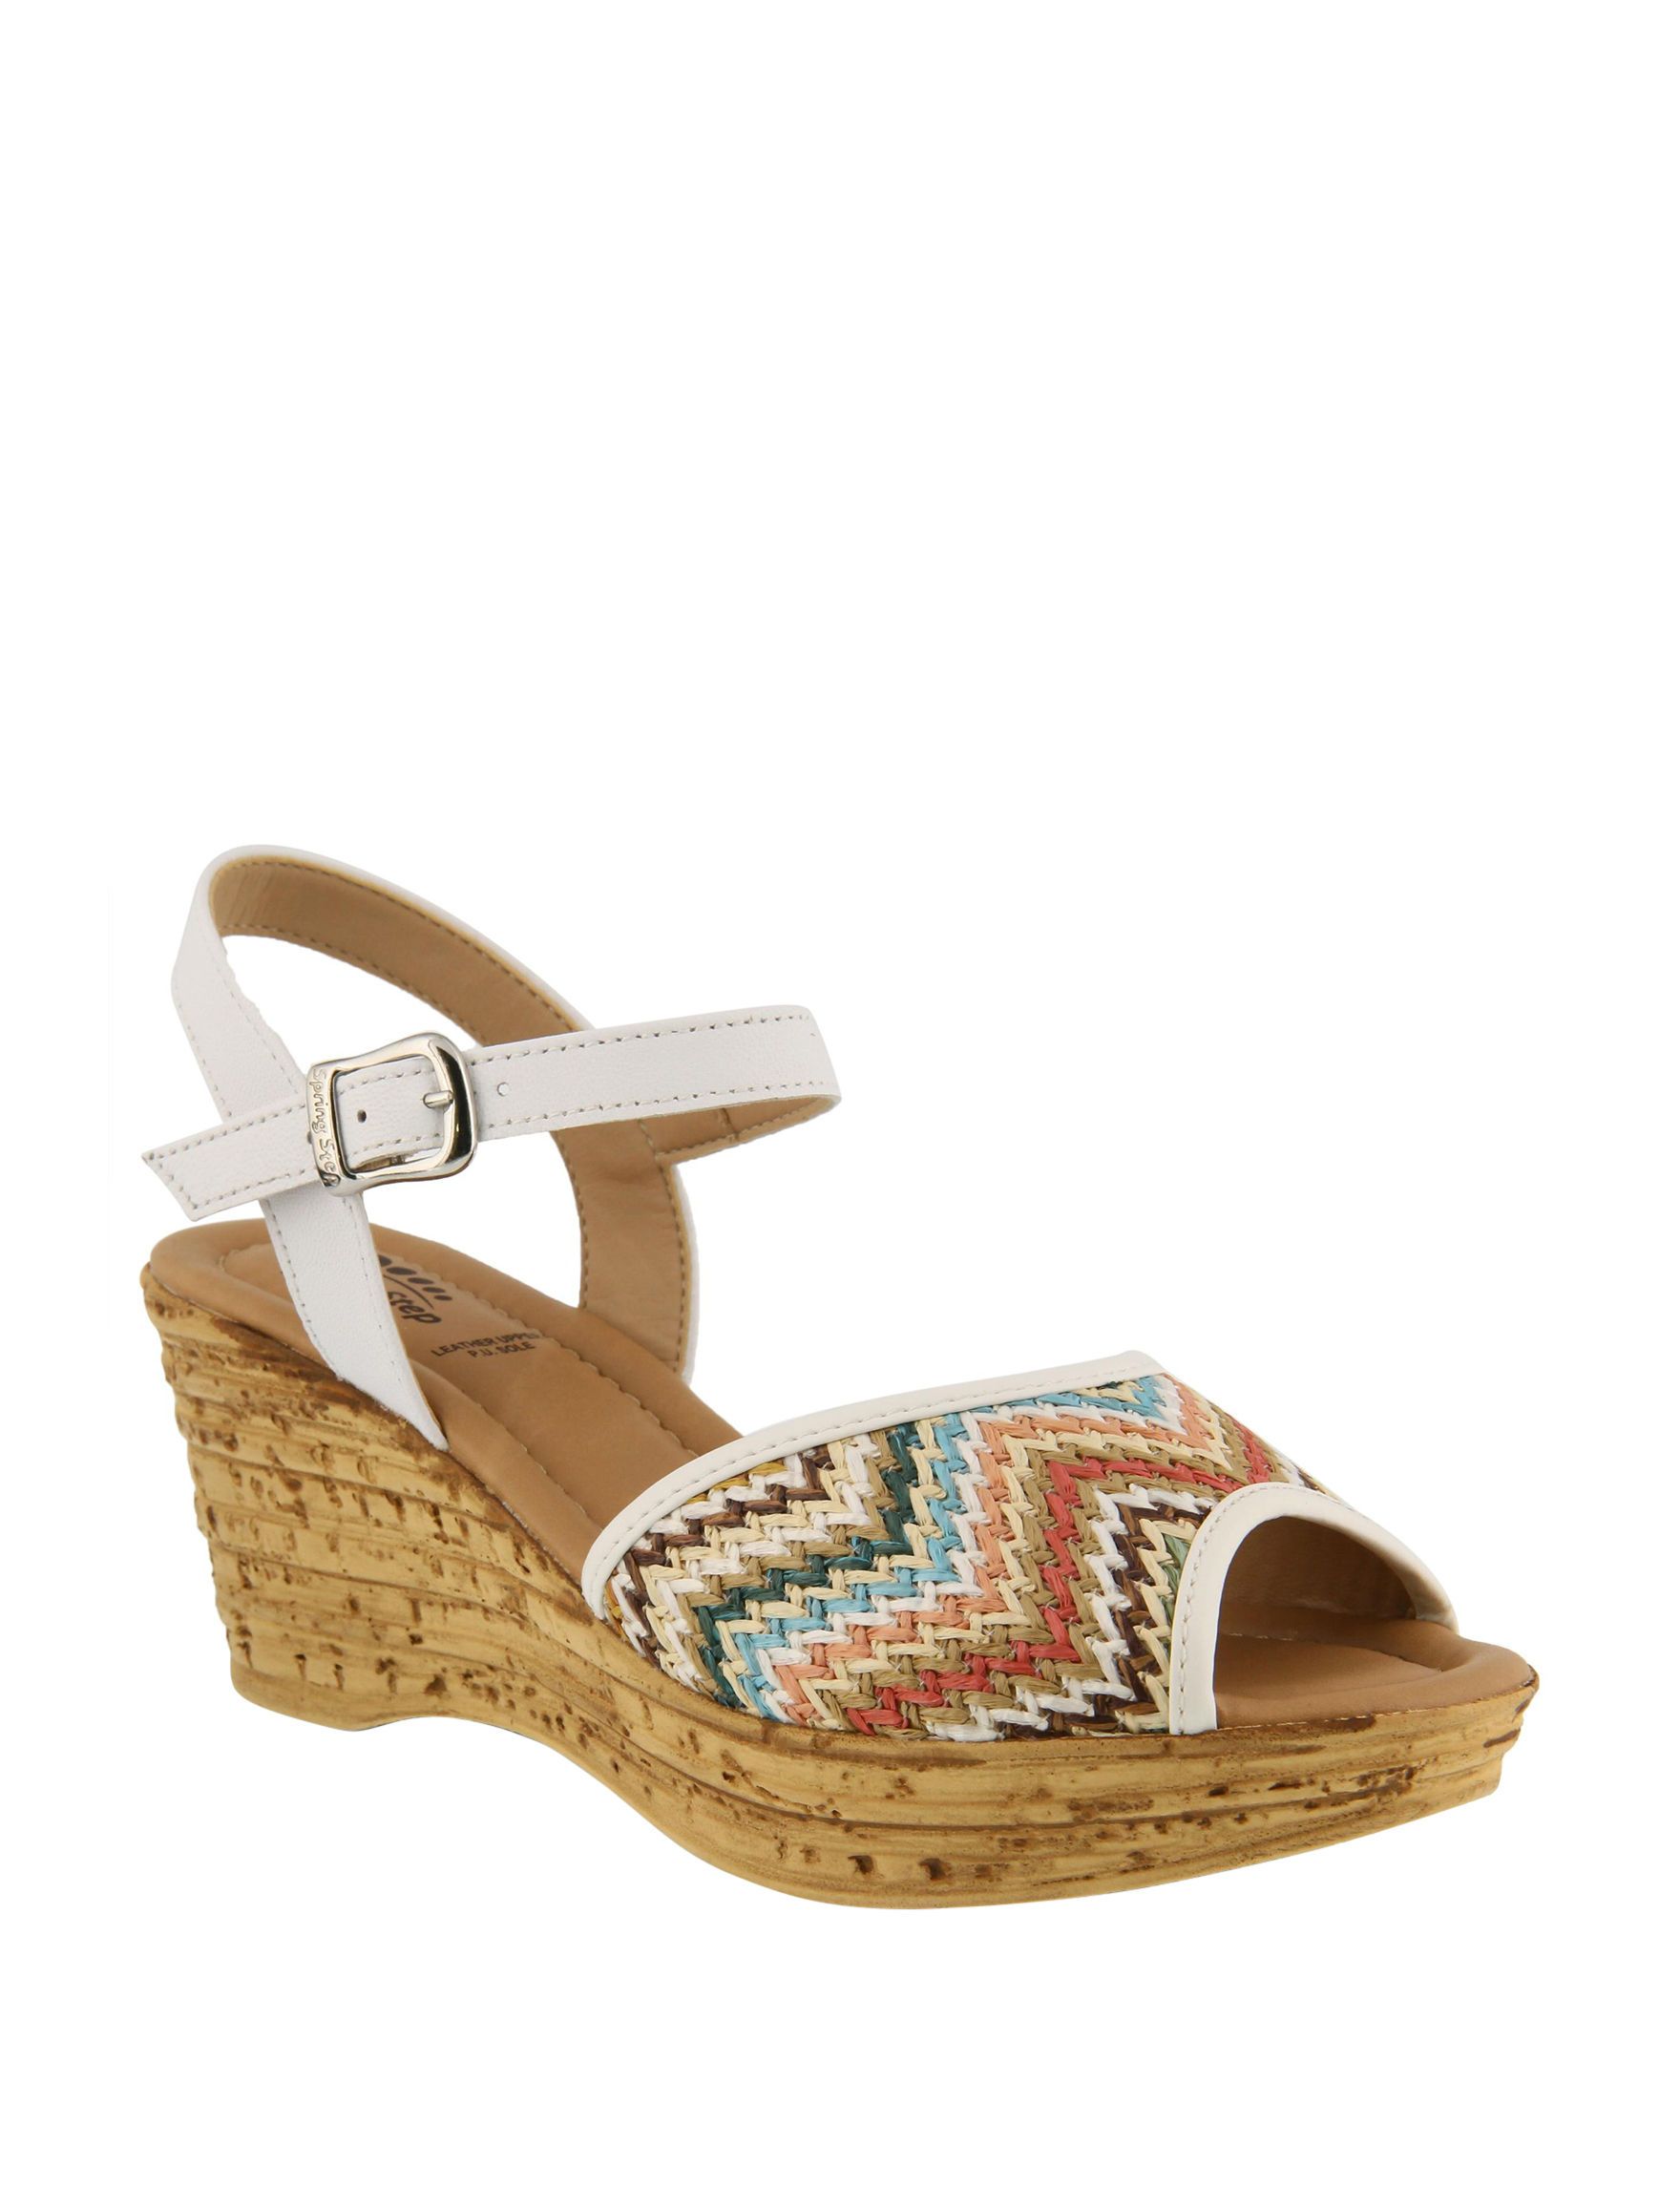 Spring Step White Multi Wedge Sandals